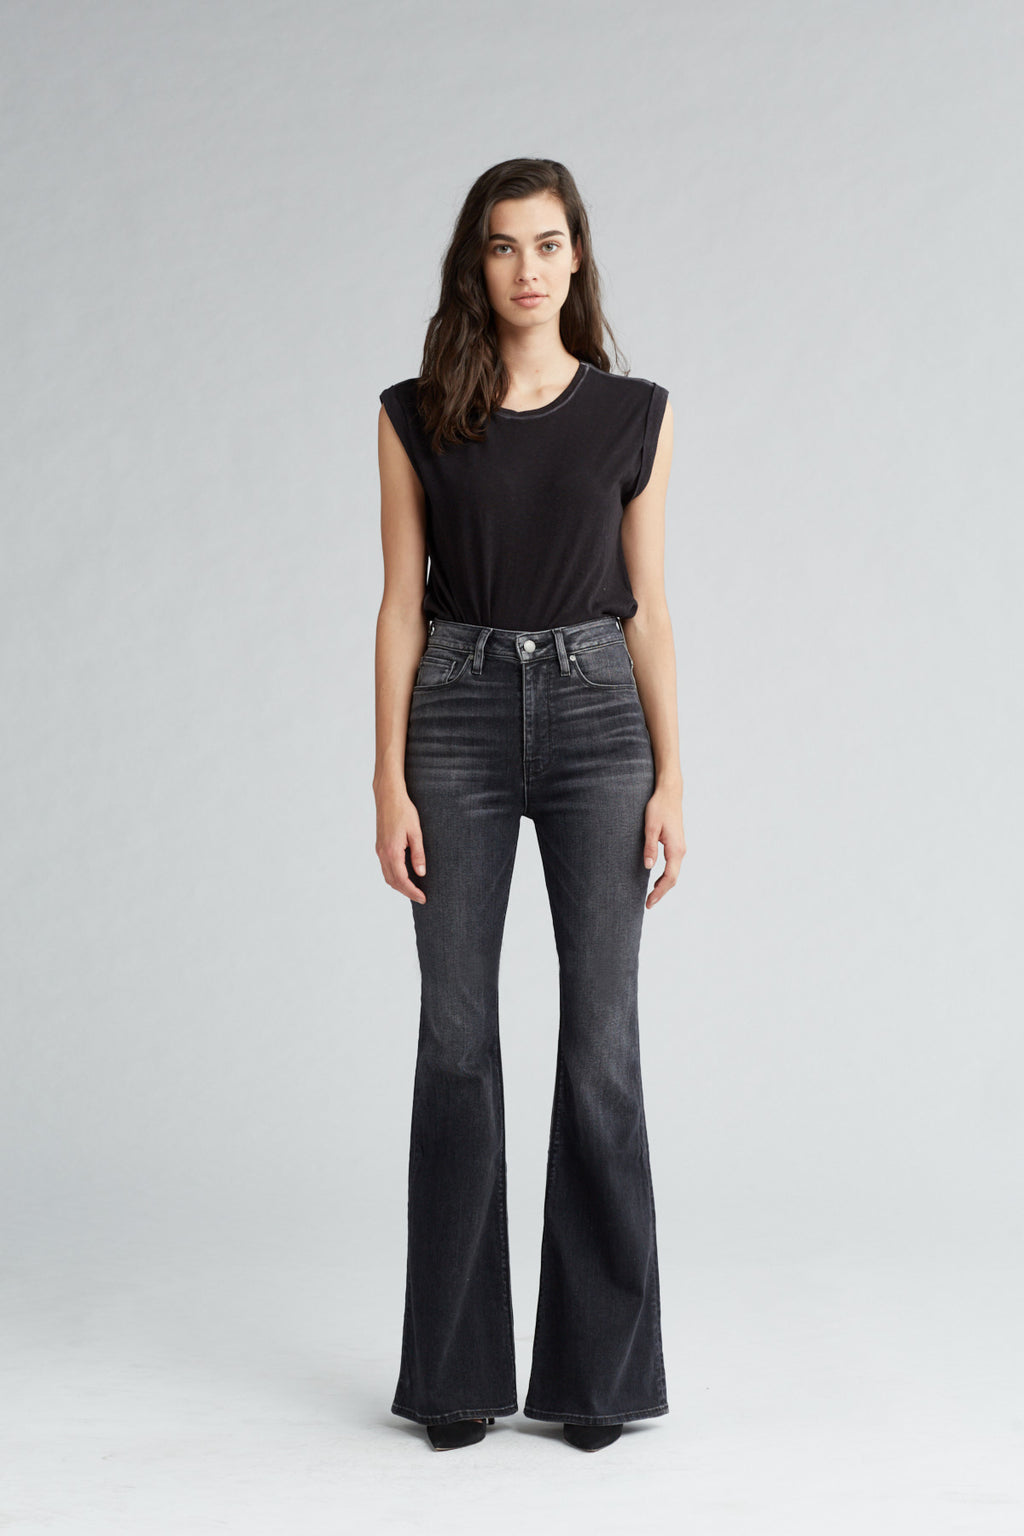 HOLLY HIGH RISE FLARE JEAN - KONA - Image 1